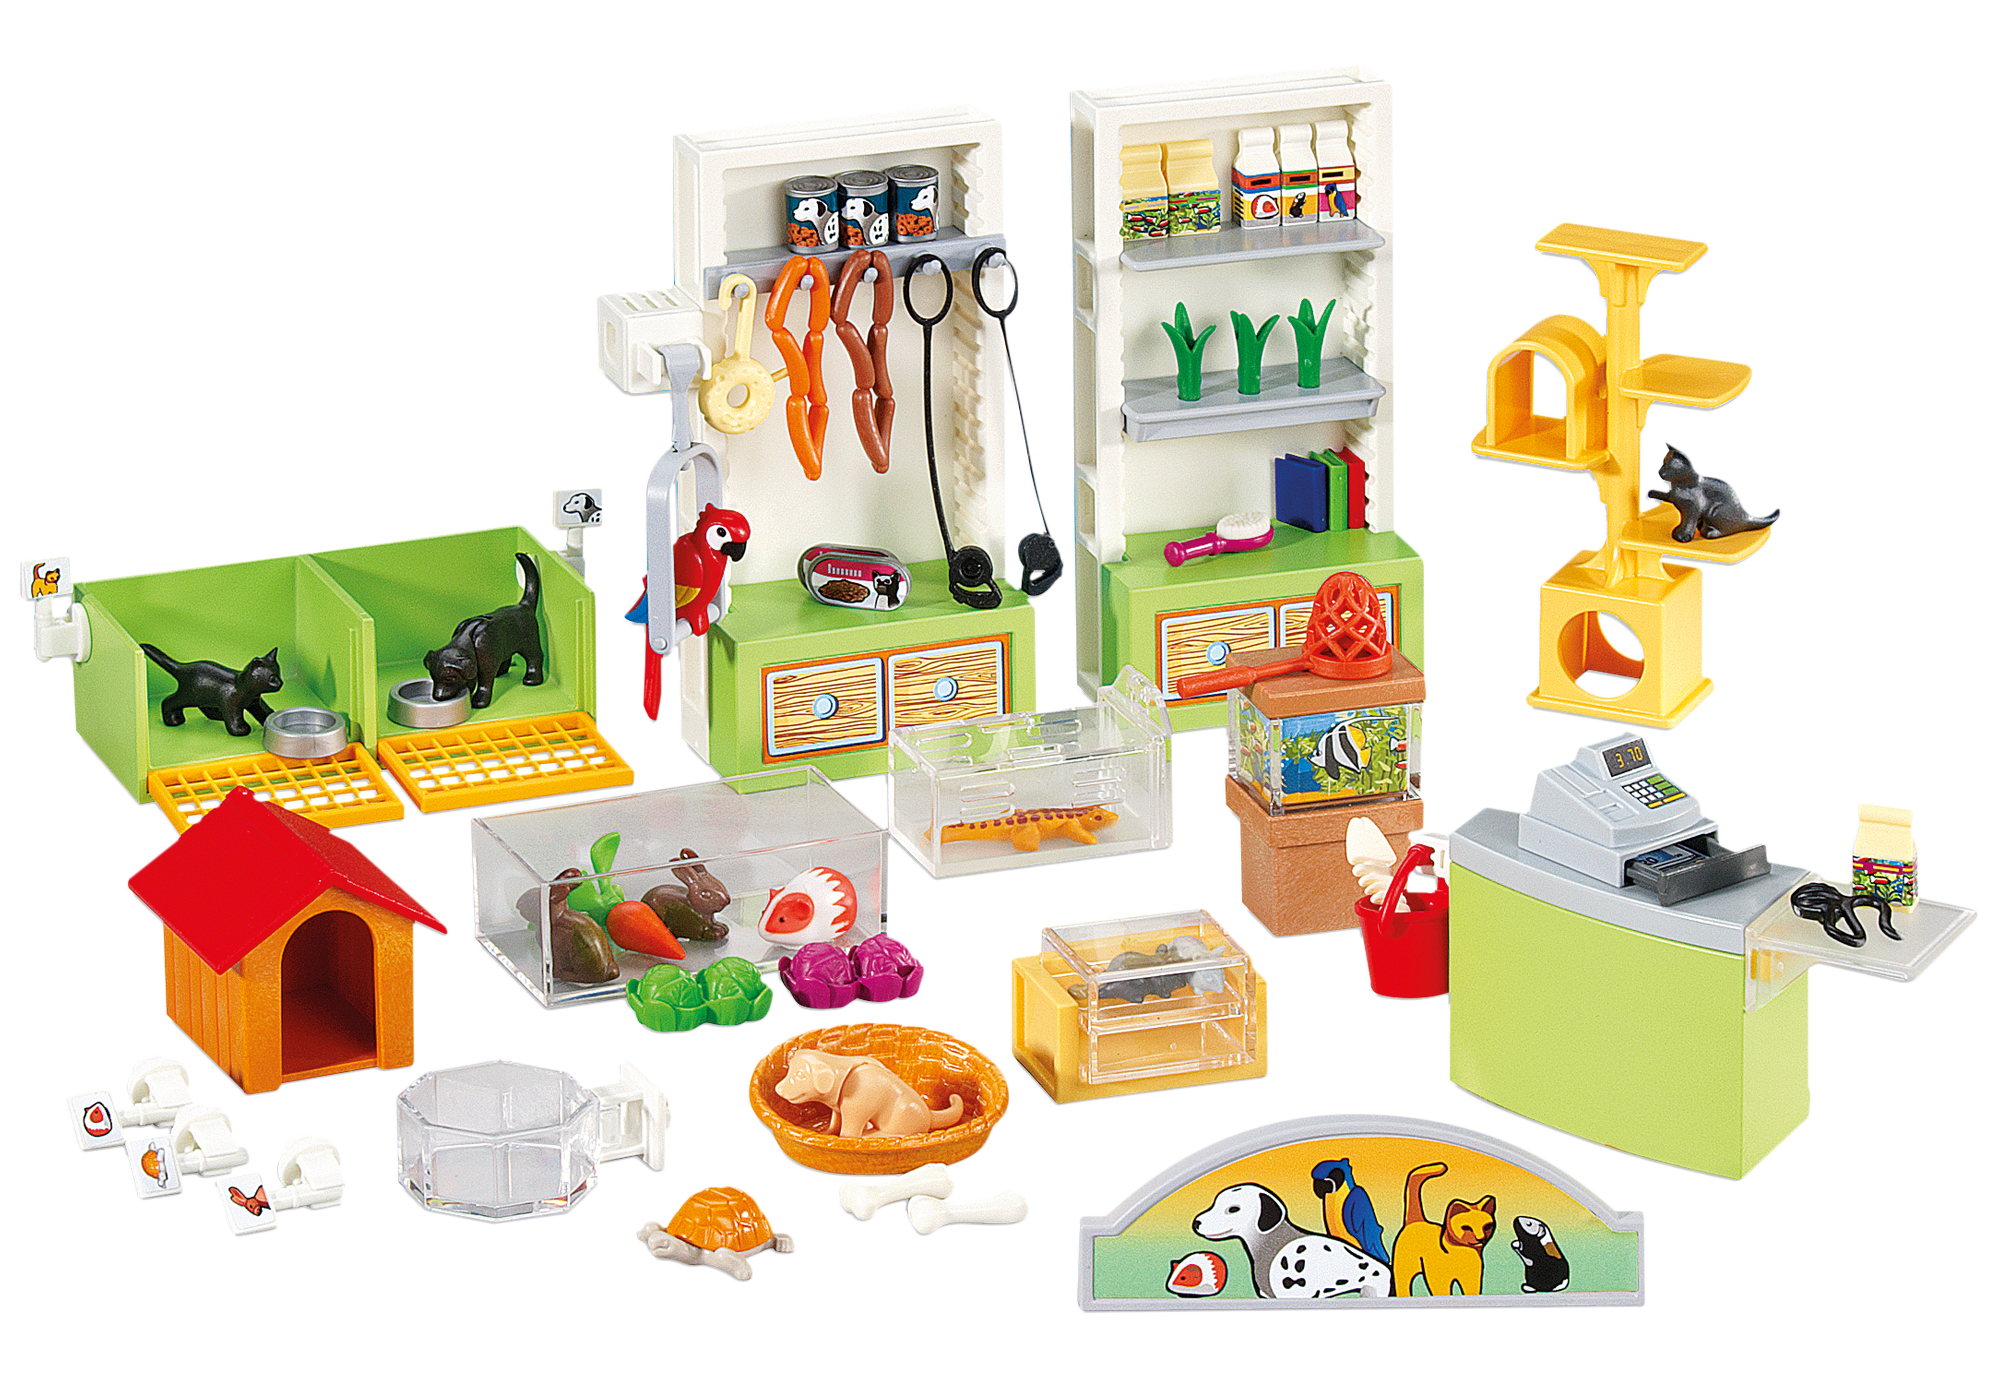 http://media.playmobil.com/i/playmobil/6221_product_detail